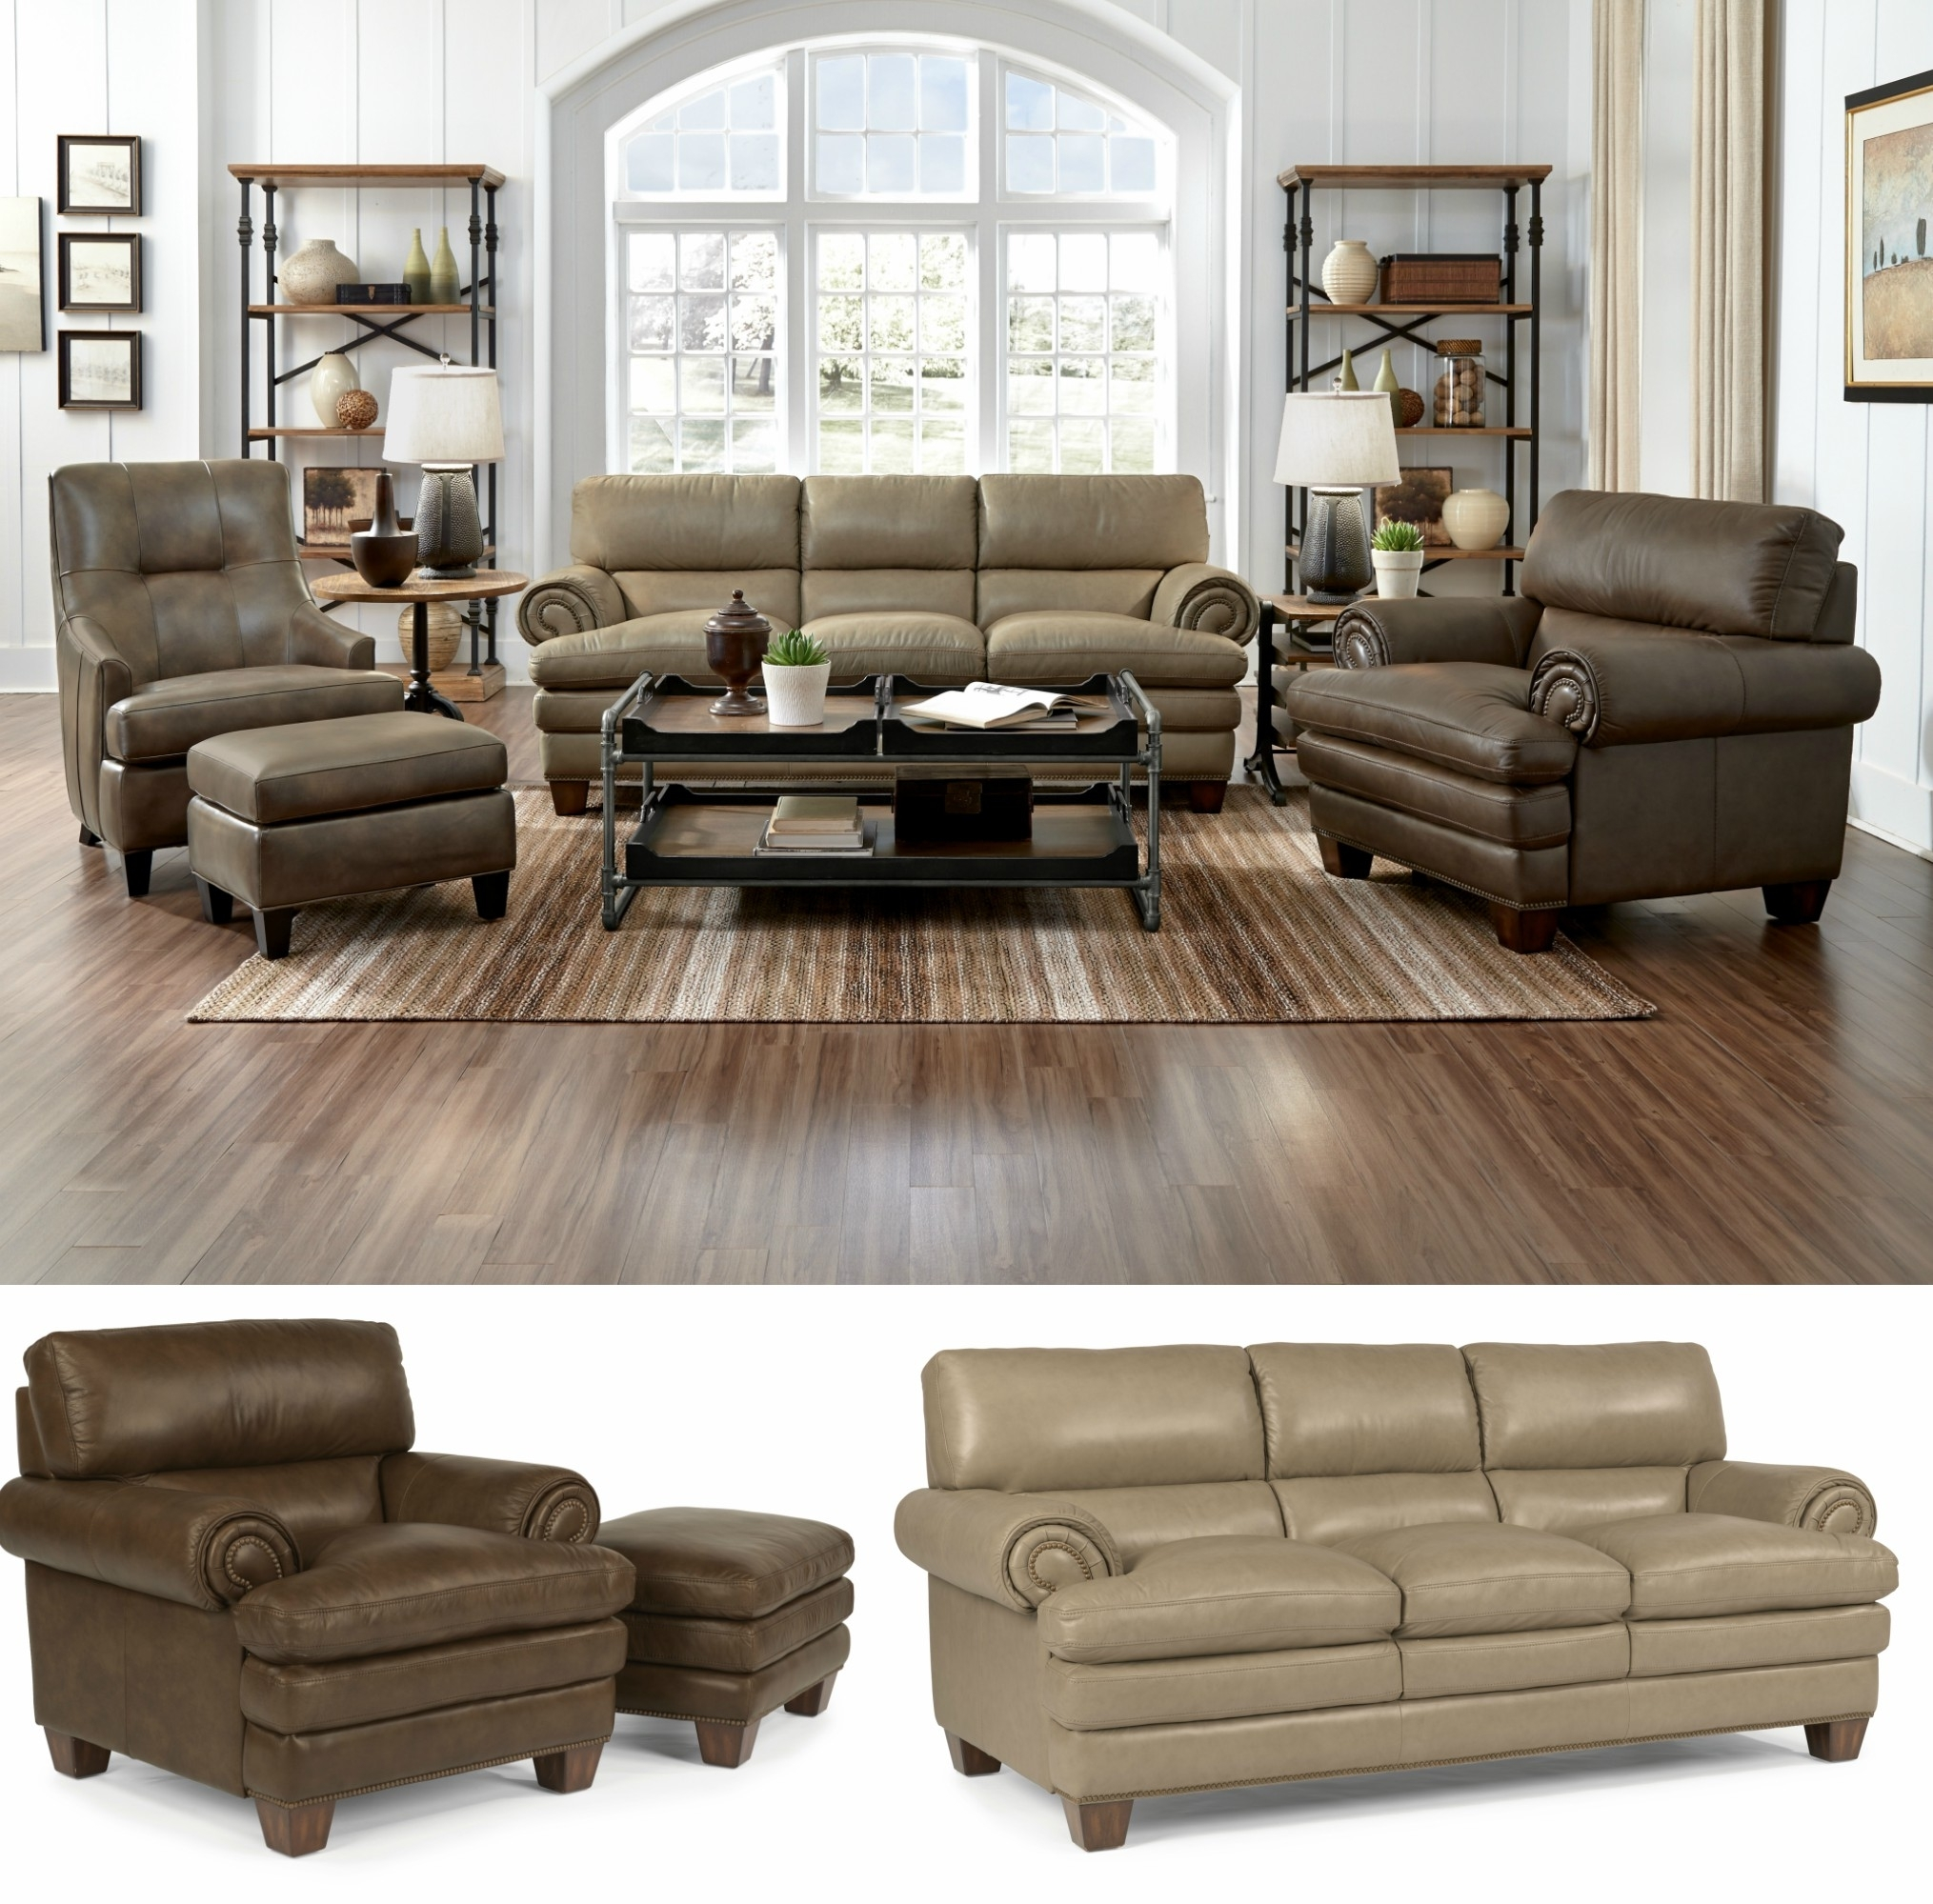 Cozy Overstuffed Leather Sofa Brown With Marvellous Decoration Camel pertaining to Camel Colored Sectional Sofas (Image 6 of 10)